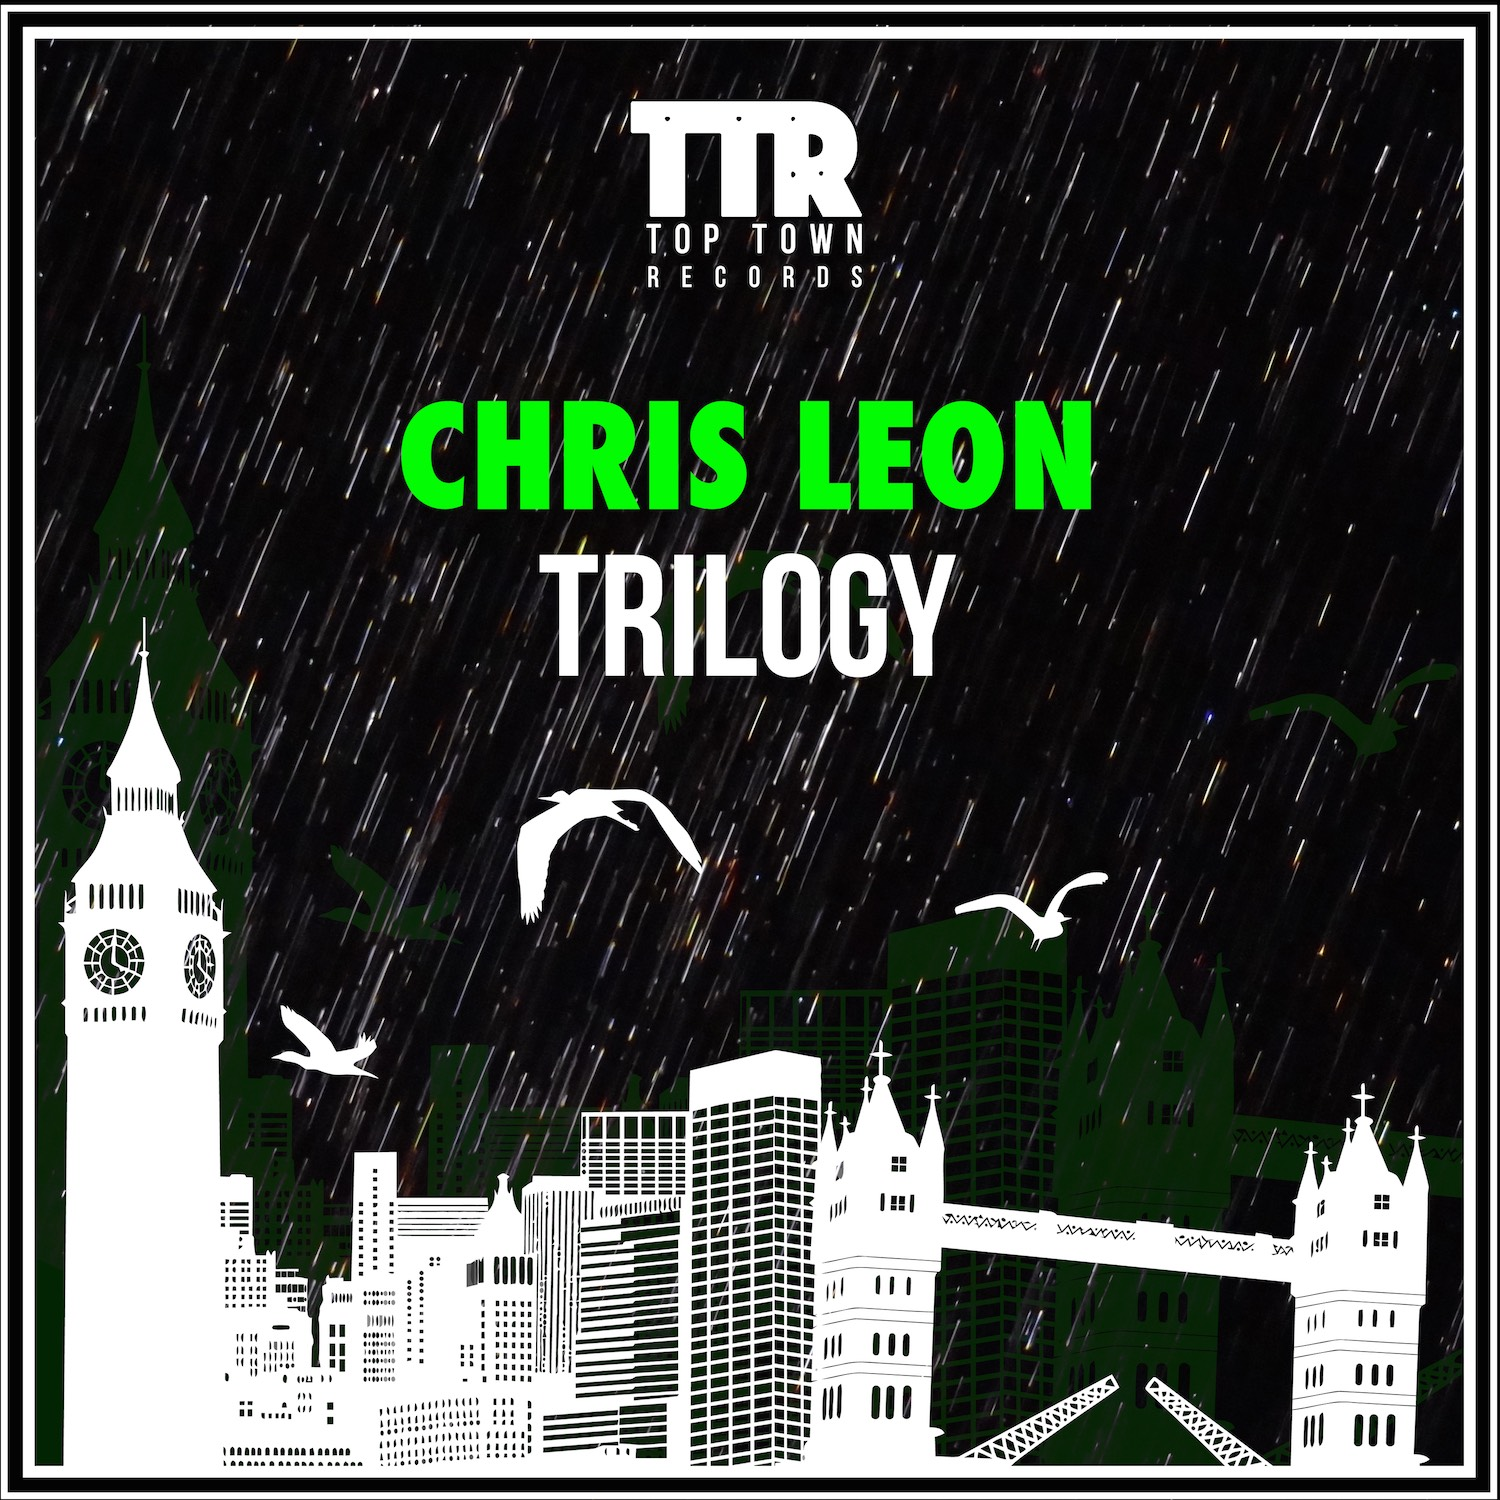 Chris Leon - Trilogy